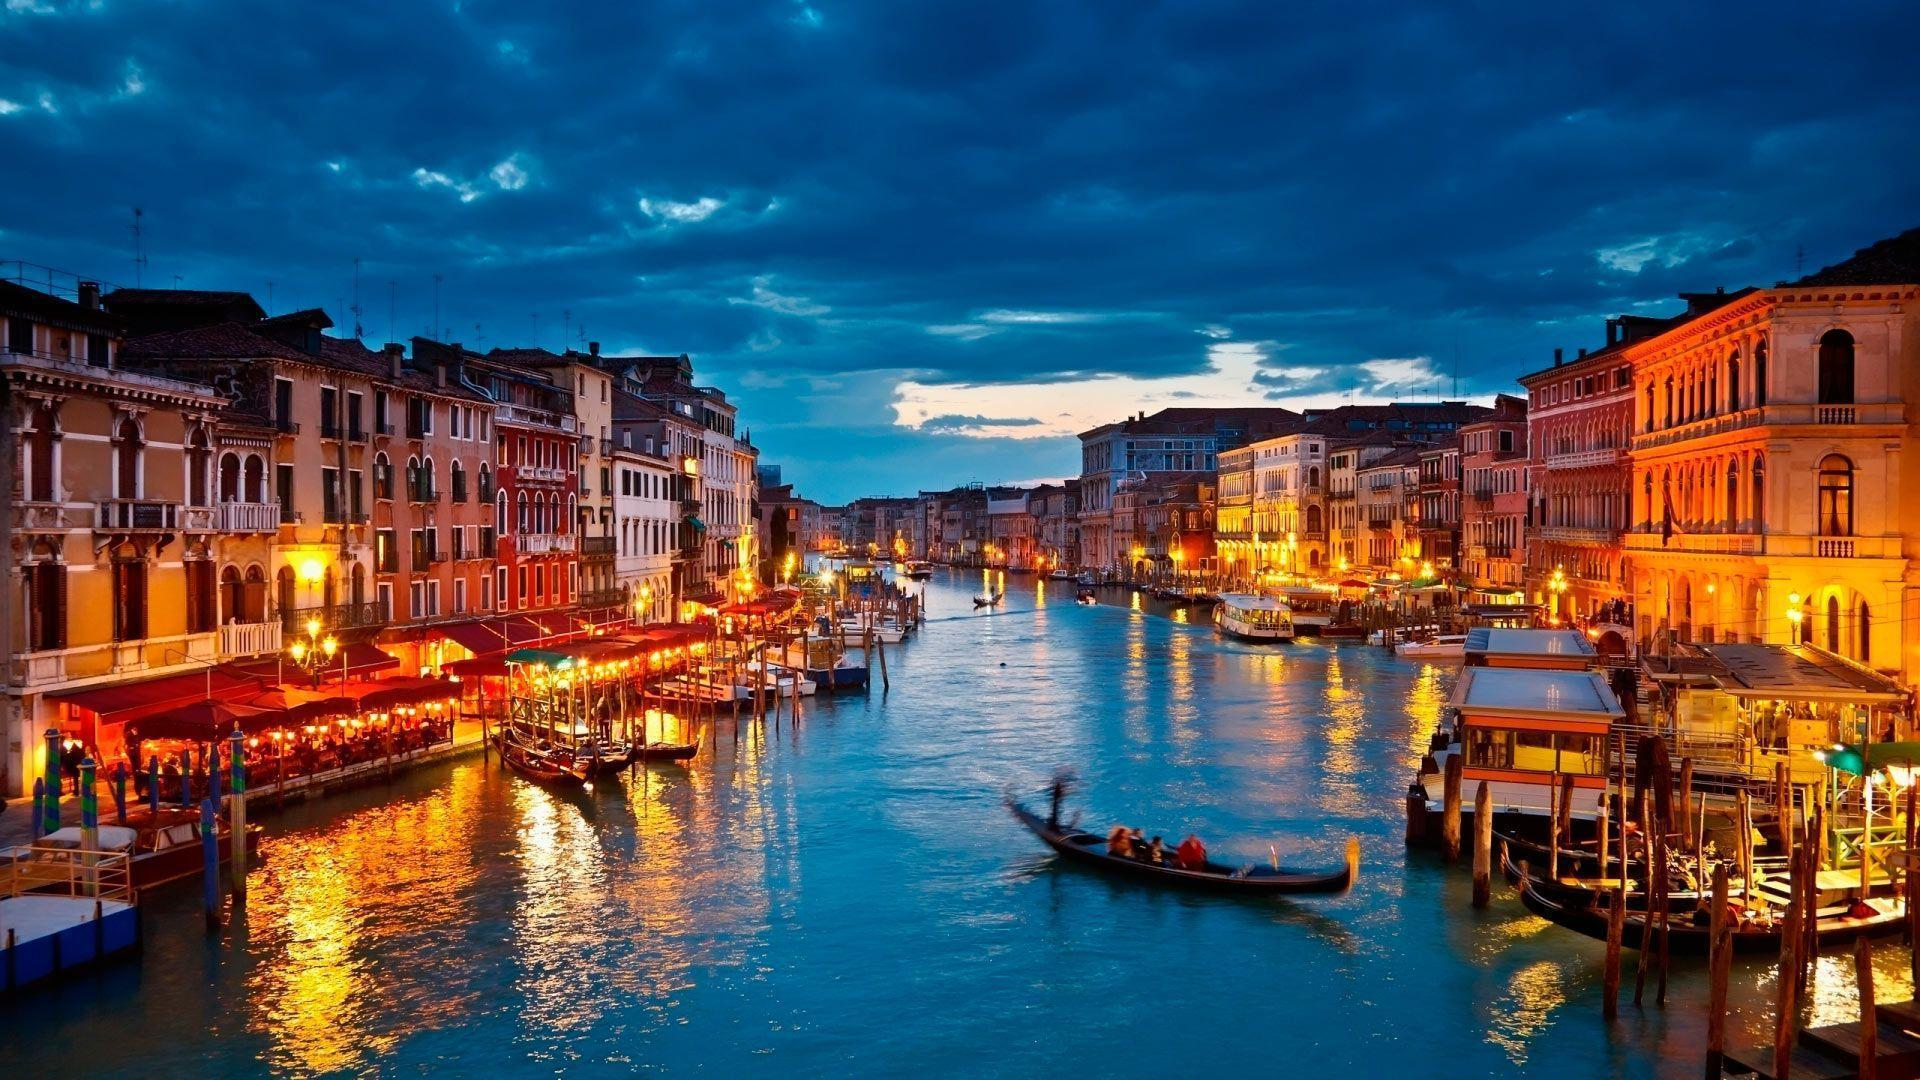 Venice City Wallpaper | Venice City Italy Images | New Wallpapers